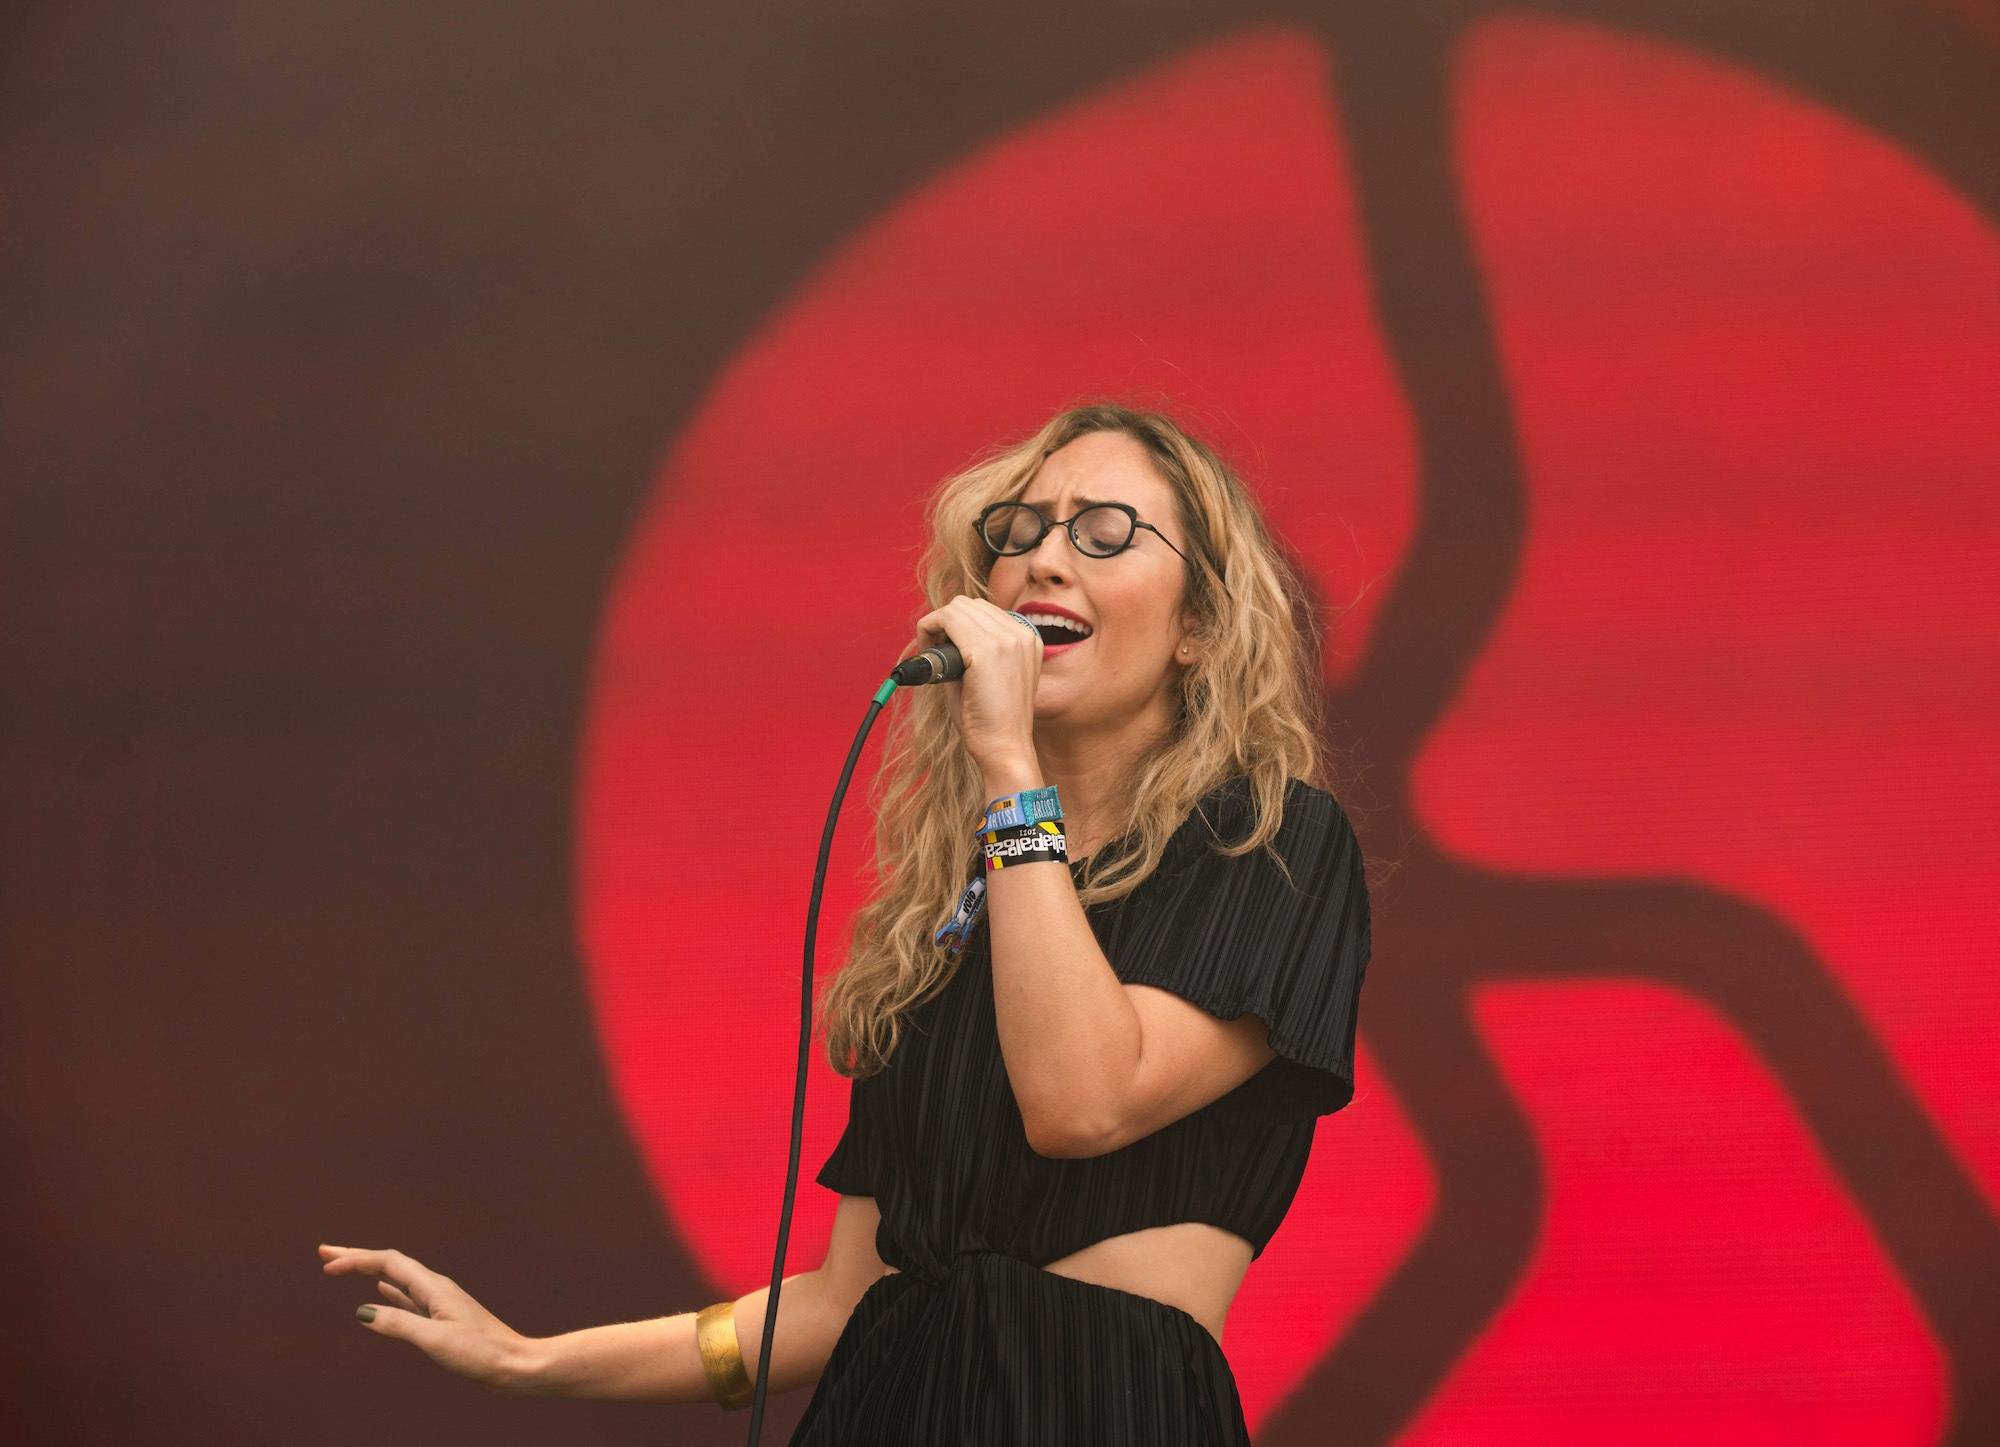 Chiiild Live at Lollapalooza [GALLERY] 7